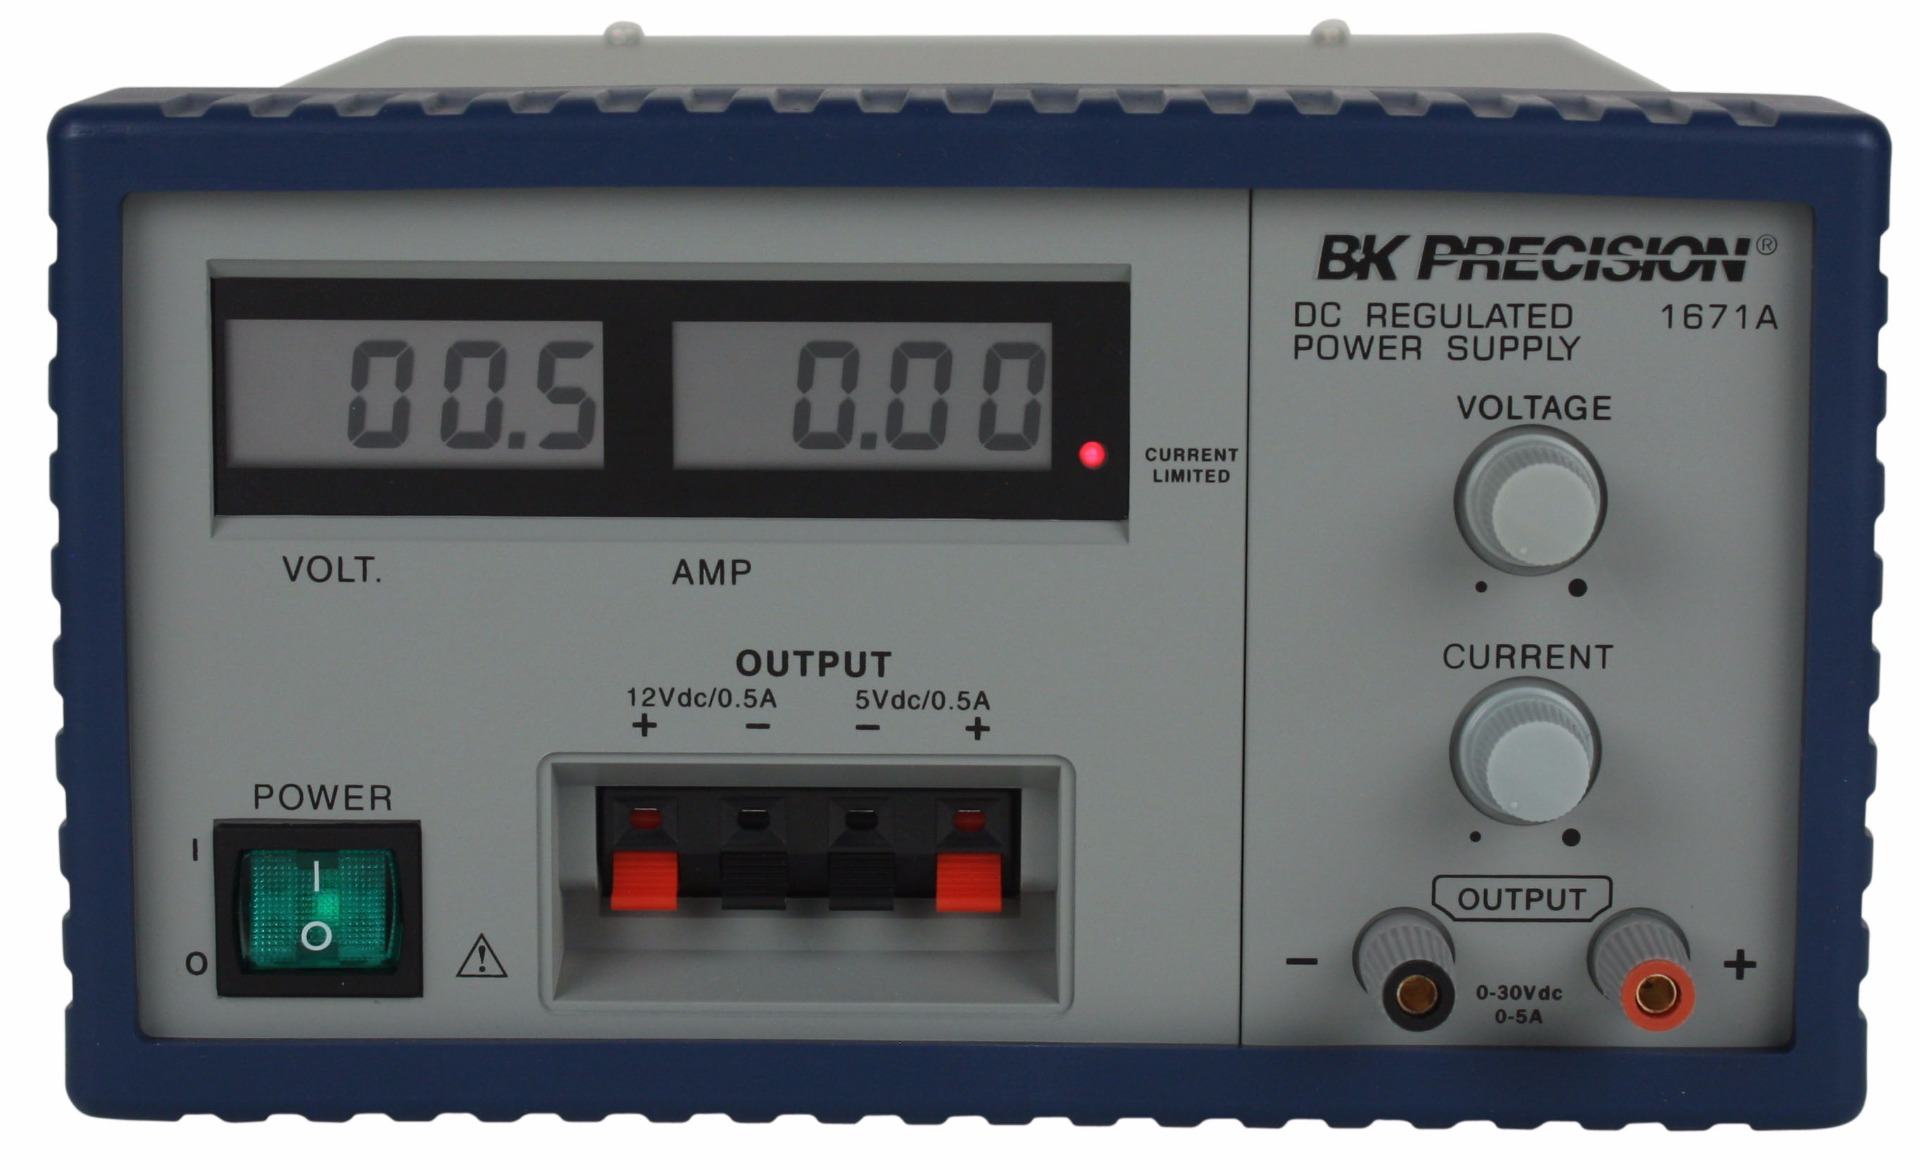 Image of BK-Precision-1670A by Valuetronics International Inc